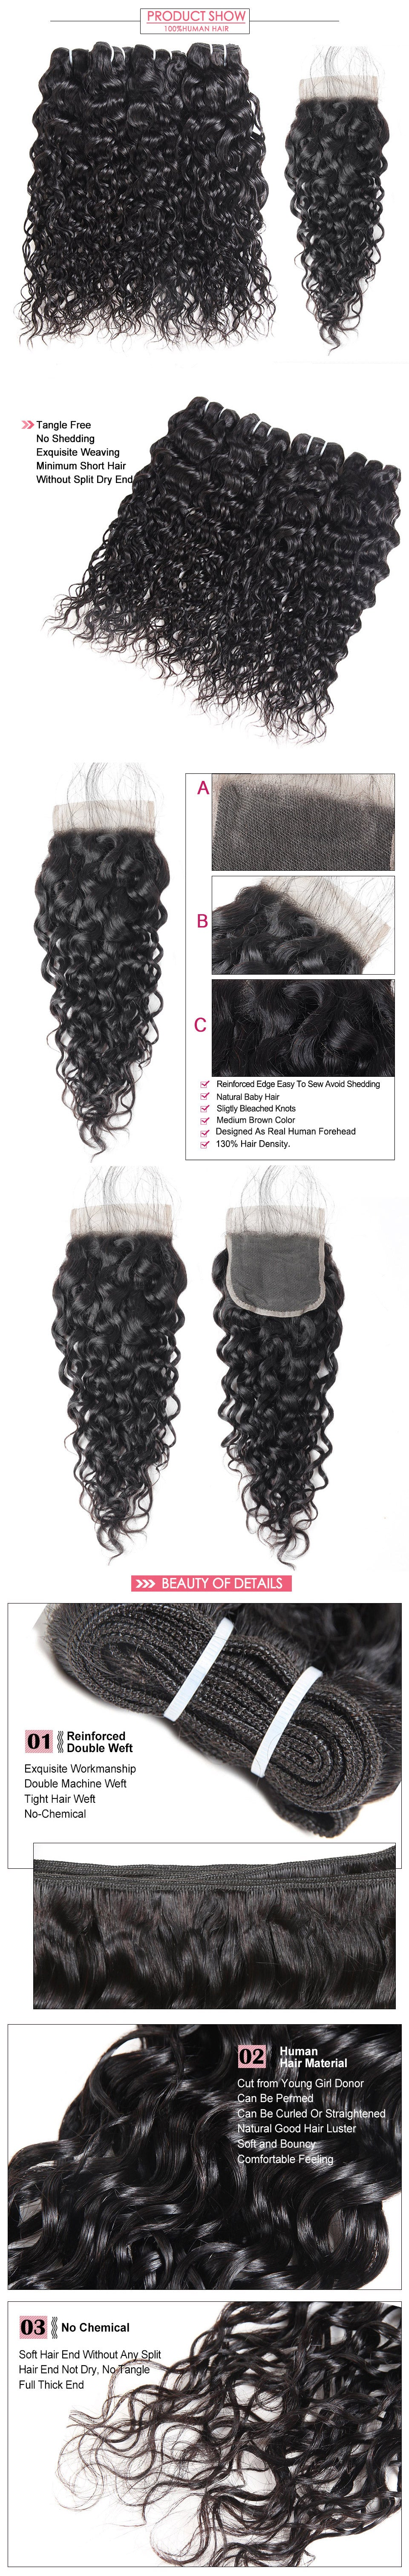 4 Bundles Water Wave Hair with Lace Closure